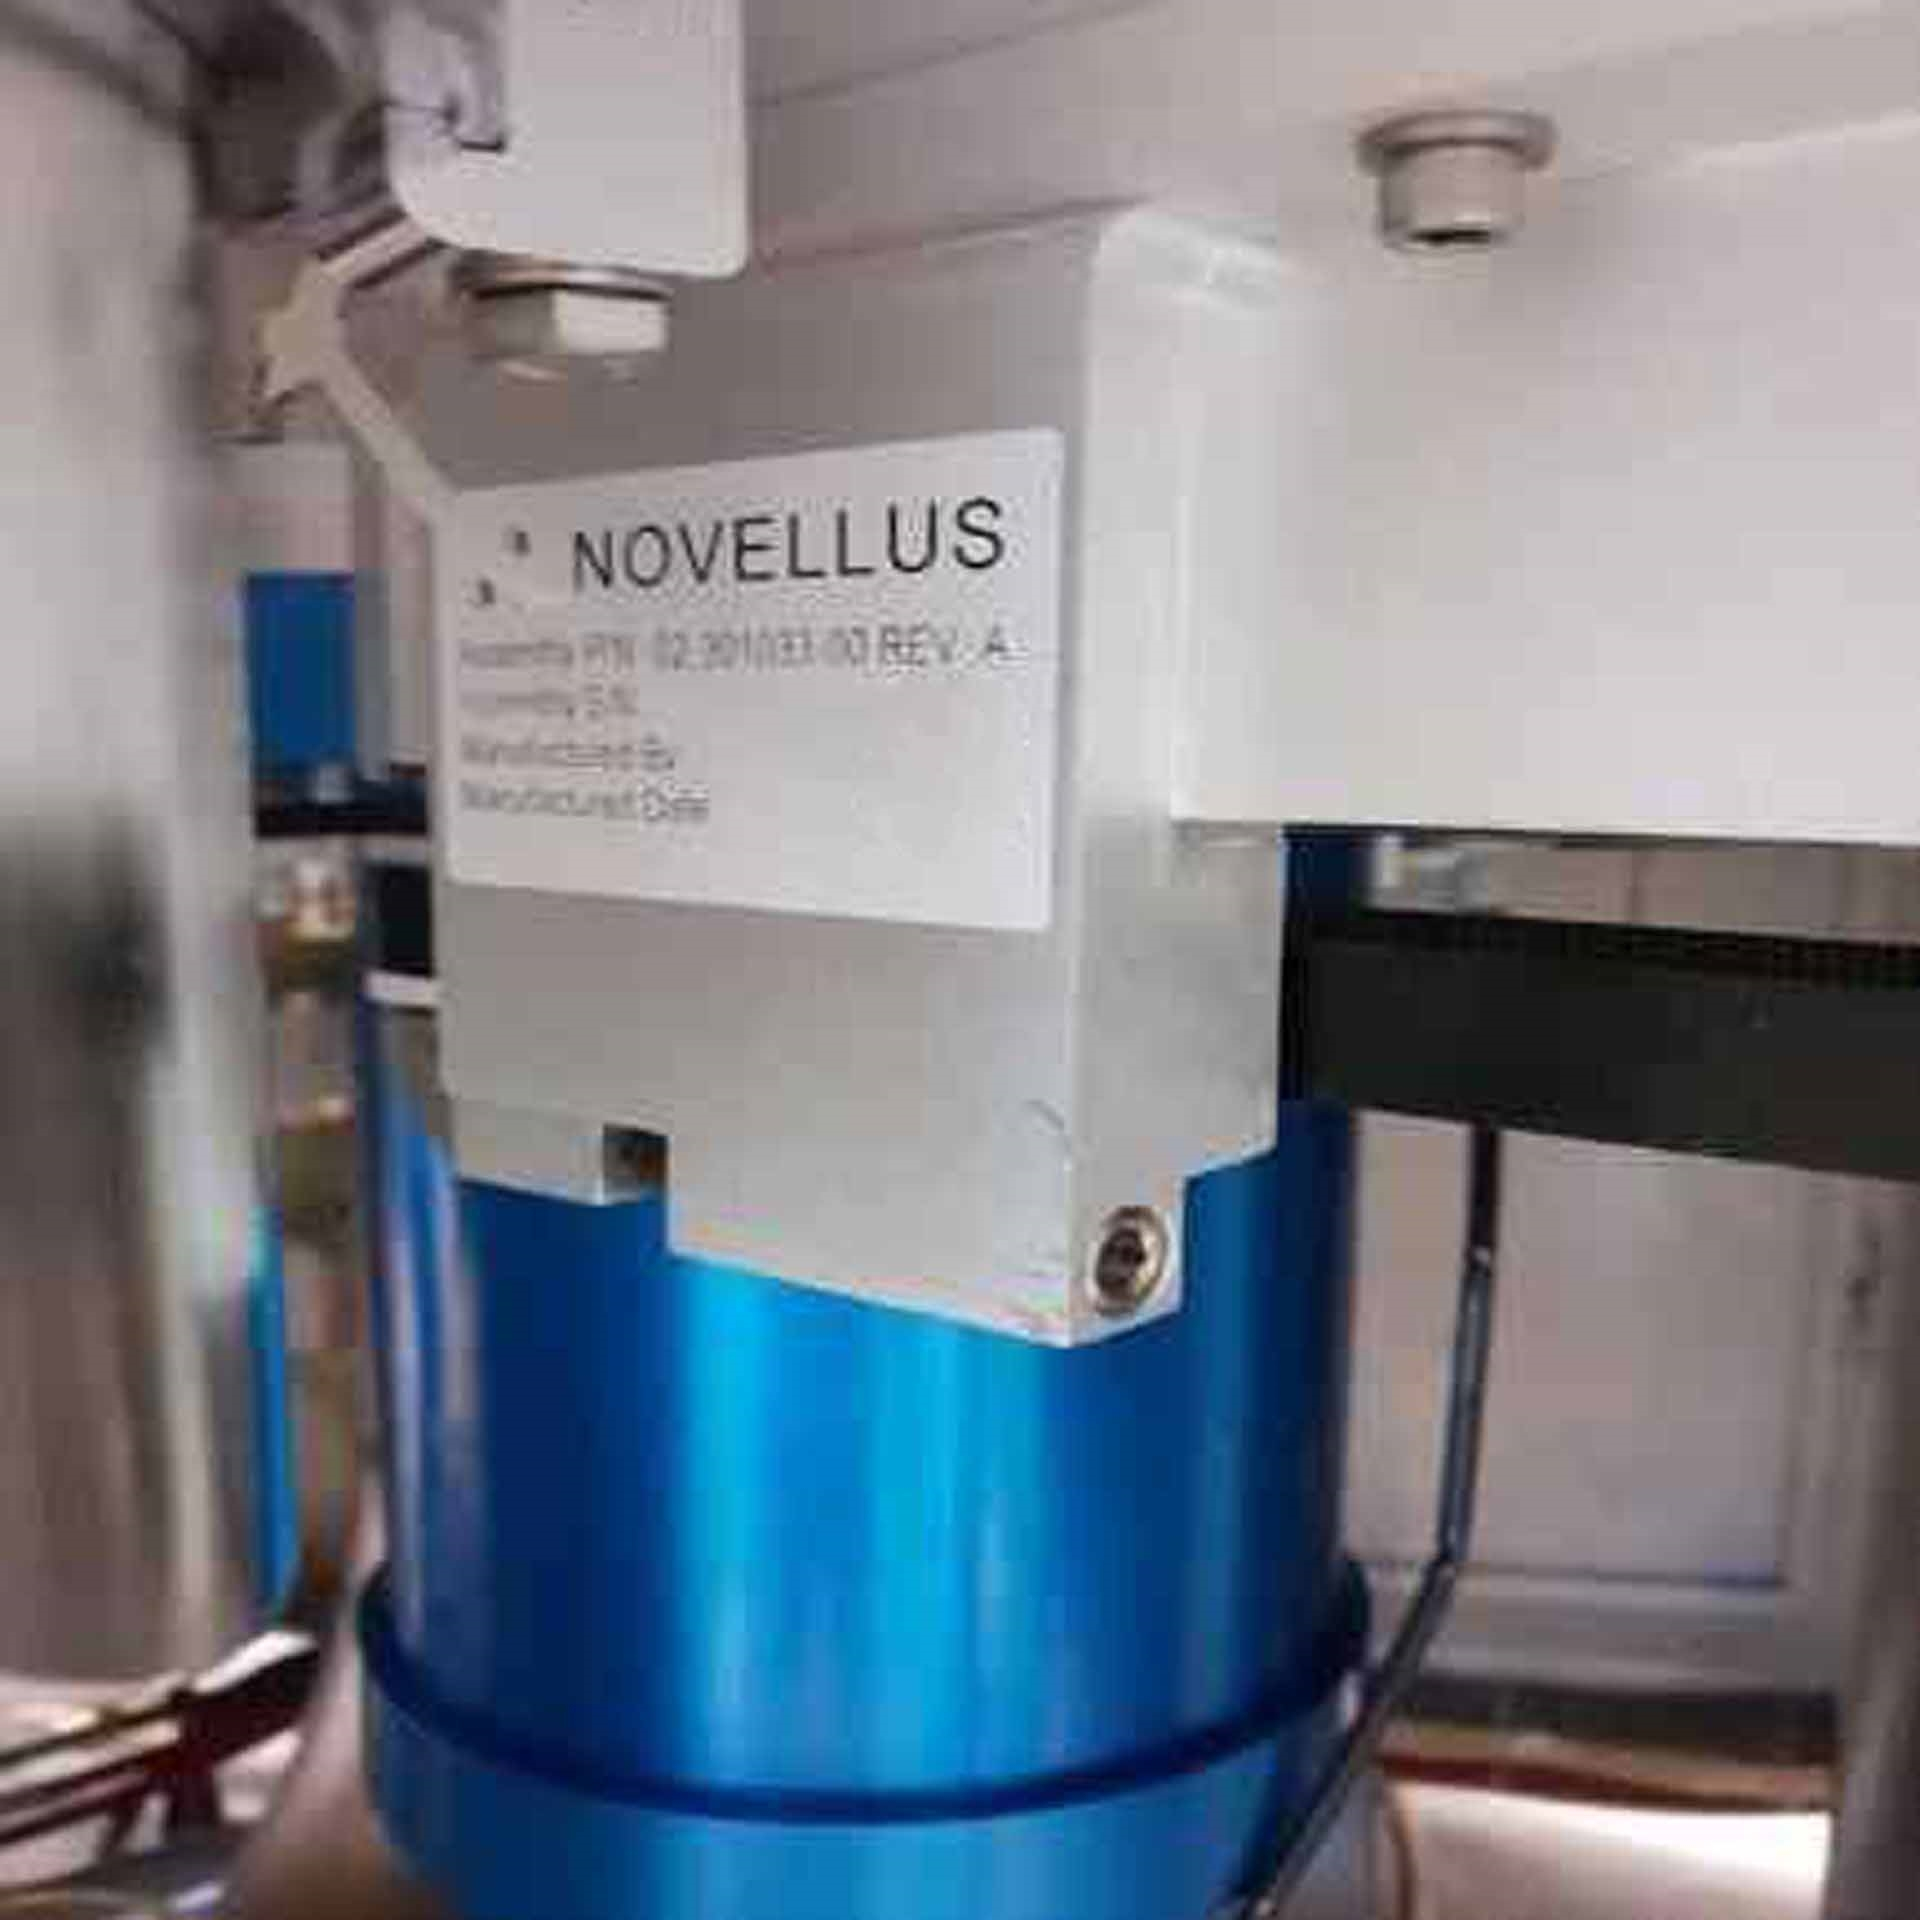 Gamma Close In Boiler Novellus Lam Gamma 2130 Xpr Used For Sale Price 9226987 2006